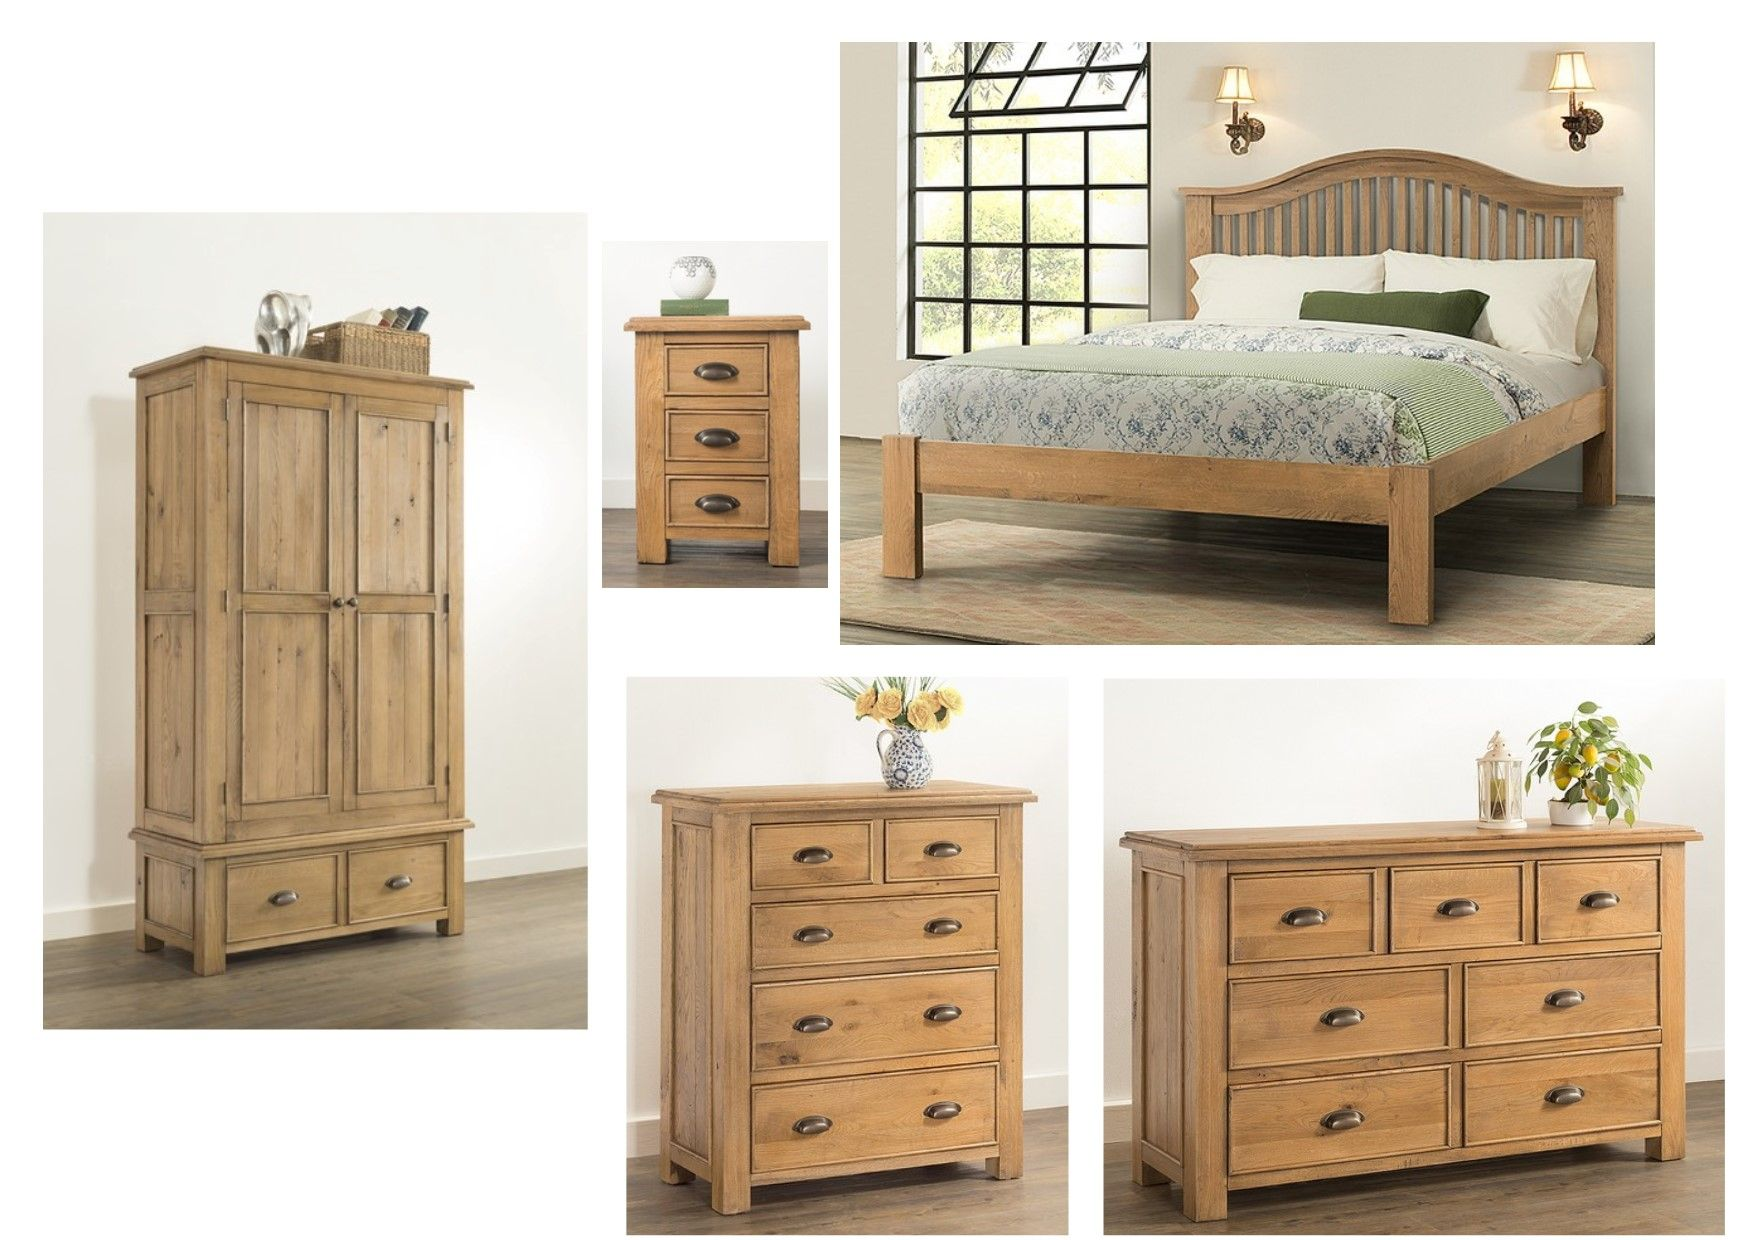 Solid Oak Bedroom Furniture Sale In 2020 Wood Bedroom Furniture Sets Wooden Bedroom Furniture Bedroom Furniture For Sale